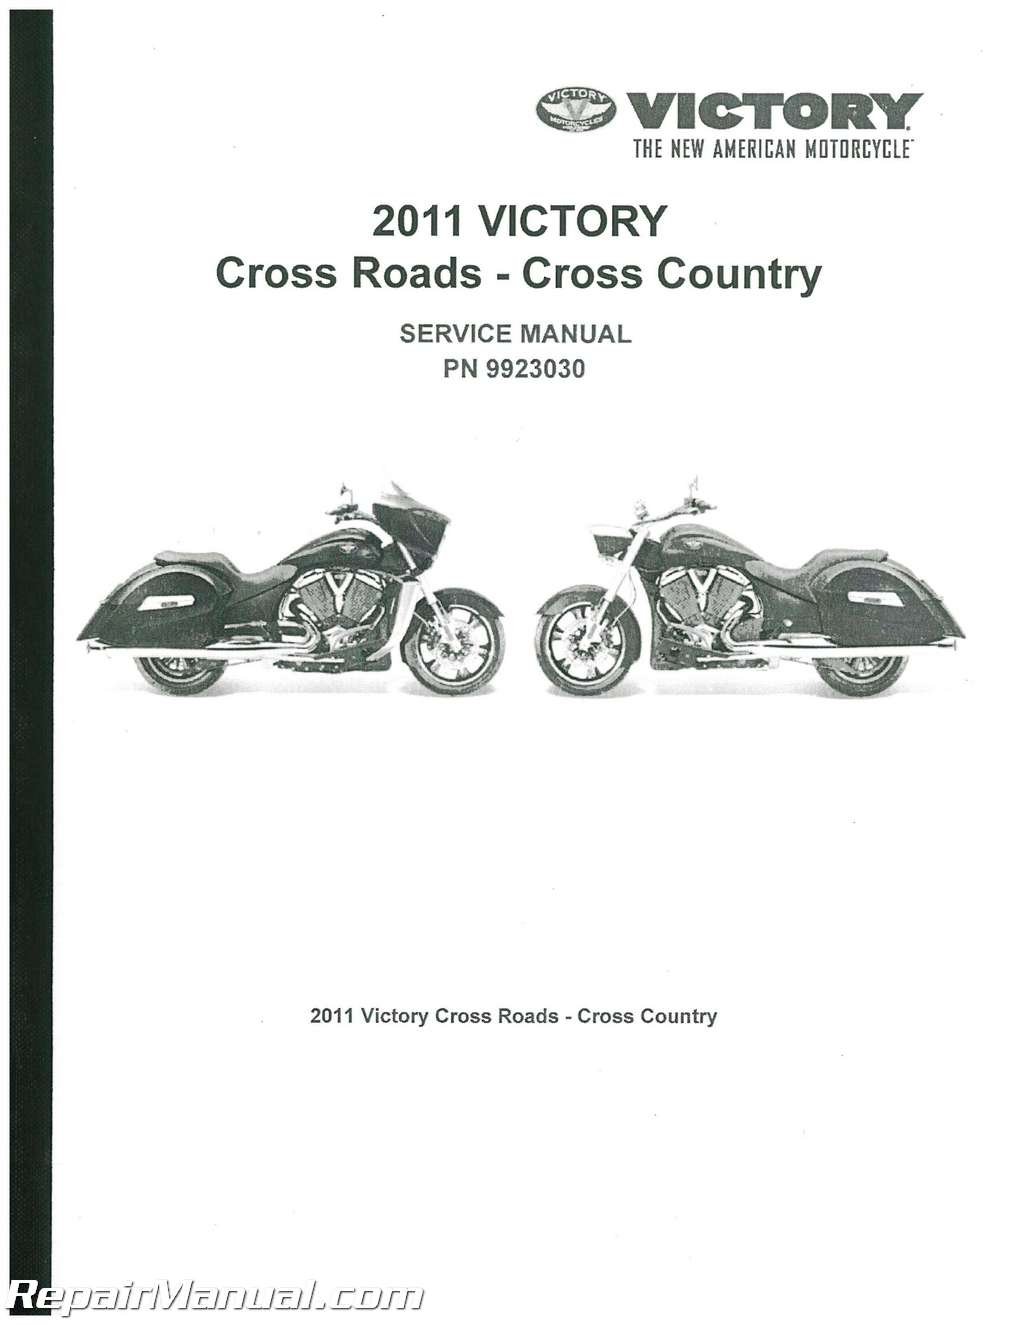 2011 victory cross country and cross roads service manual rh repairmanual com manuel victory cross country 2012 victory cross country tour service manual